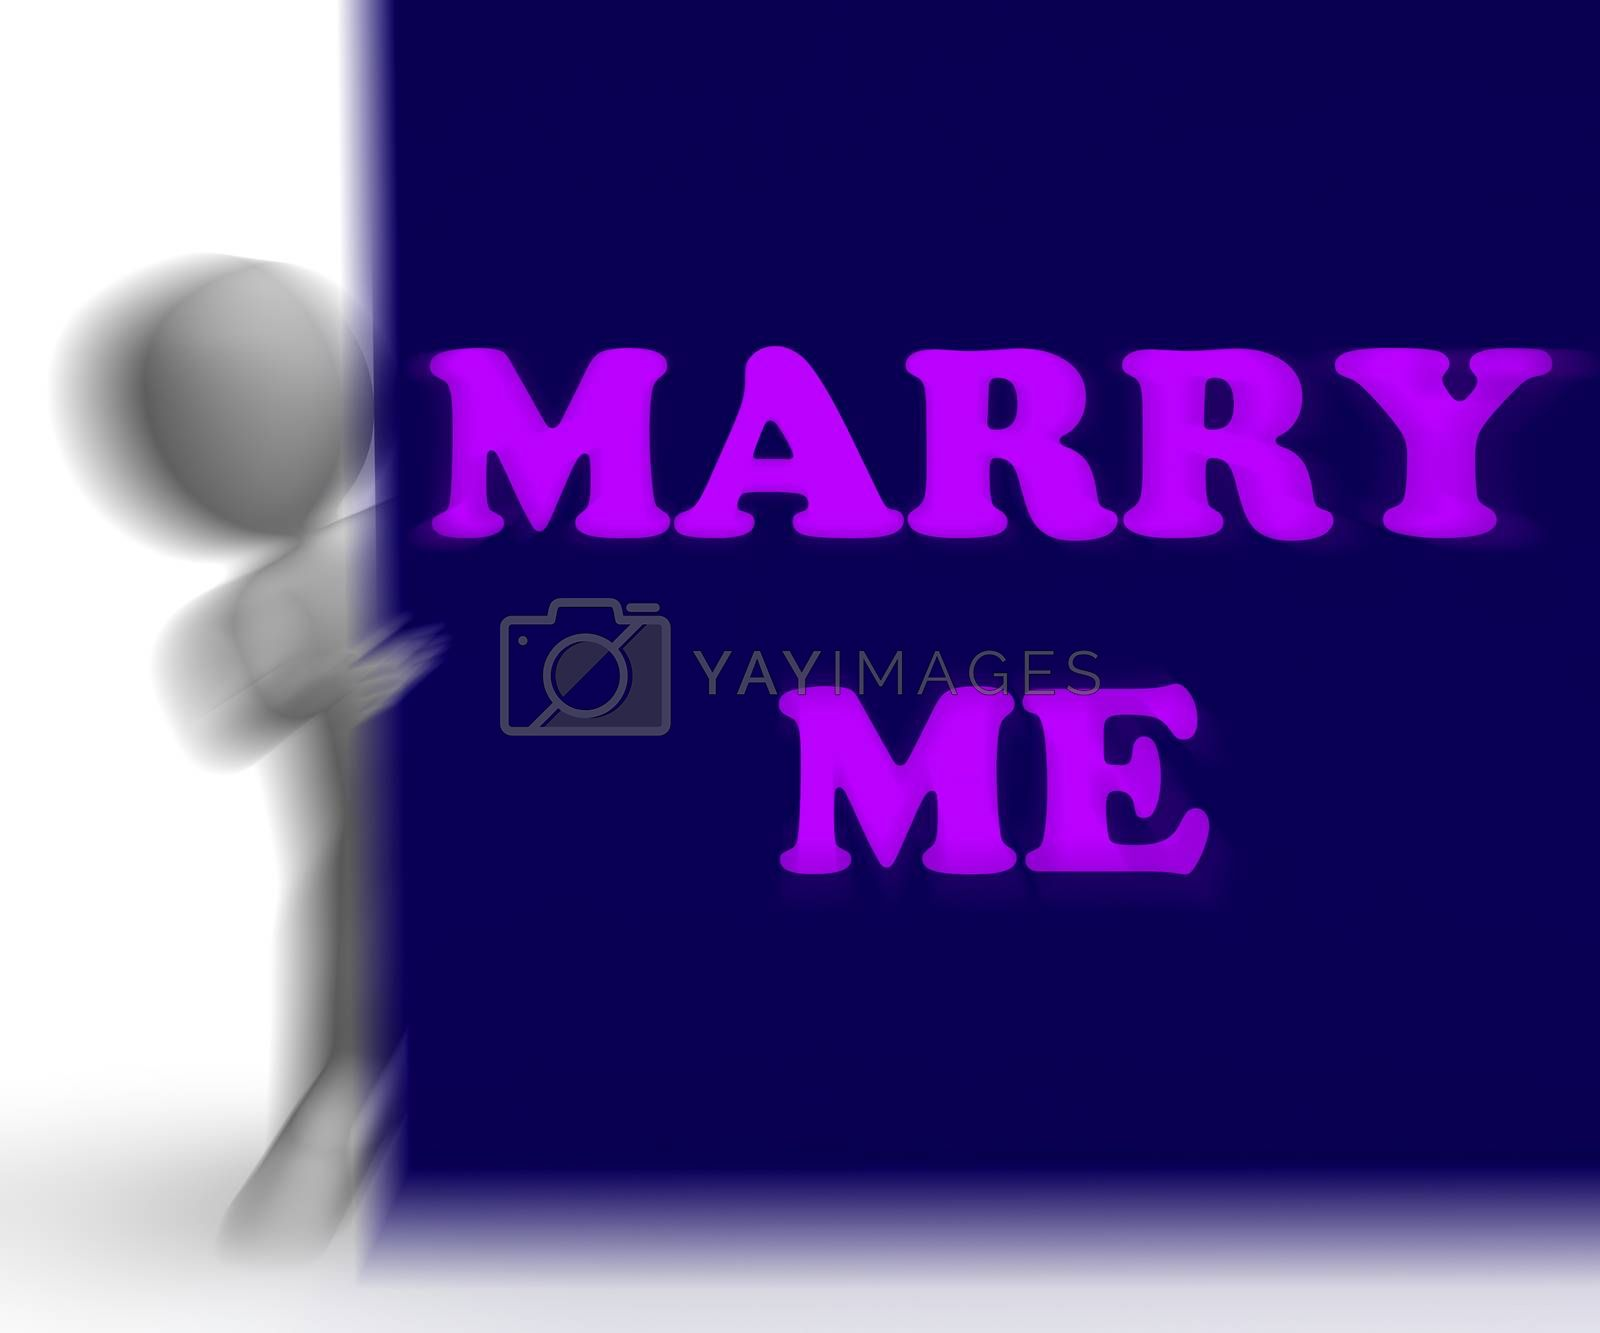 Marry Me Placard Means Romance And Marriage by stuartmiles